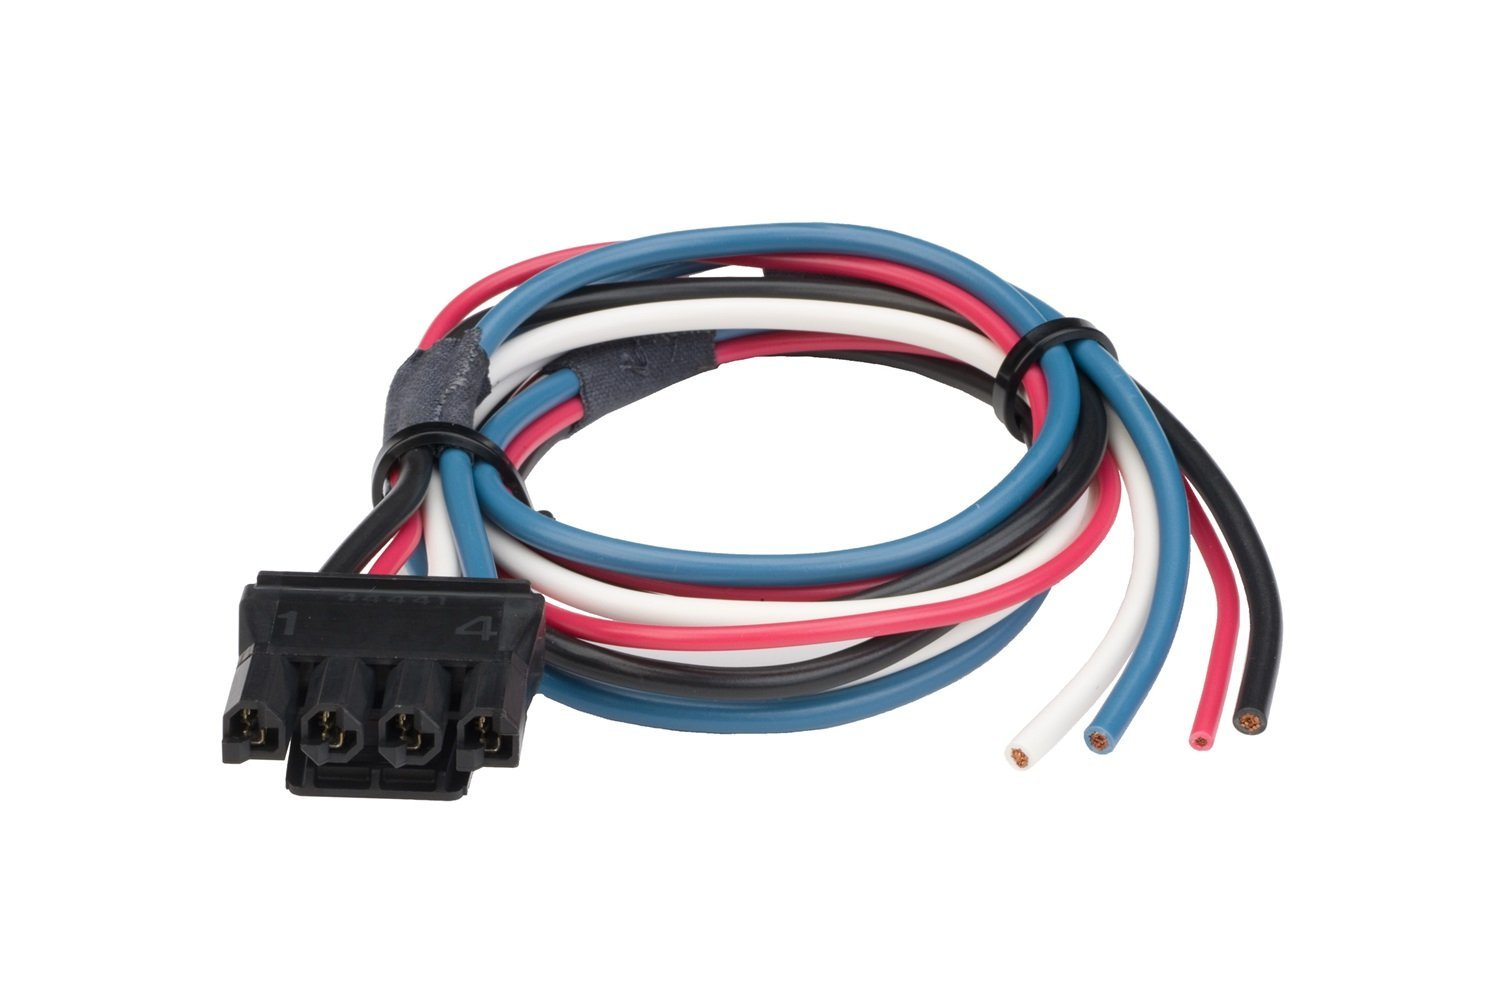 Hopkins 47685 Universal Brake Control Connector Move One Impulse Controller Wiring Diagram Between Multiple Vehicles By Towing Solutions